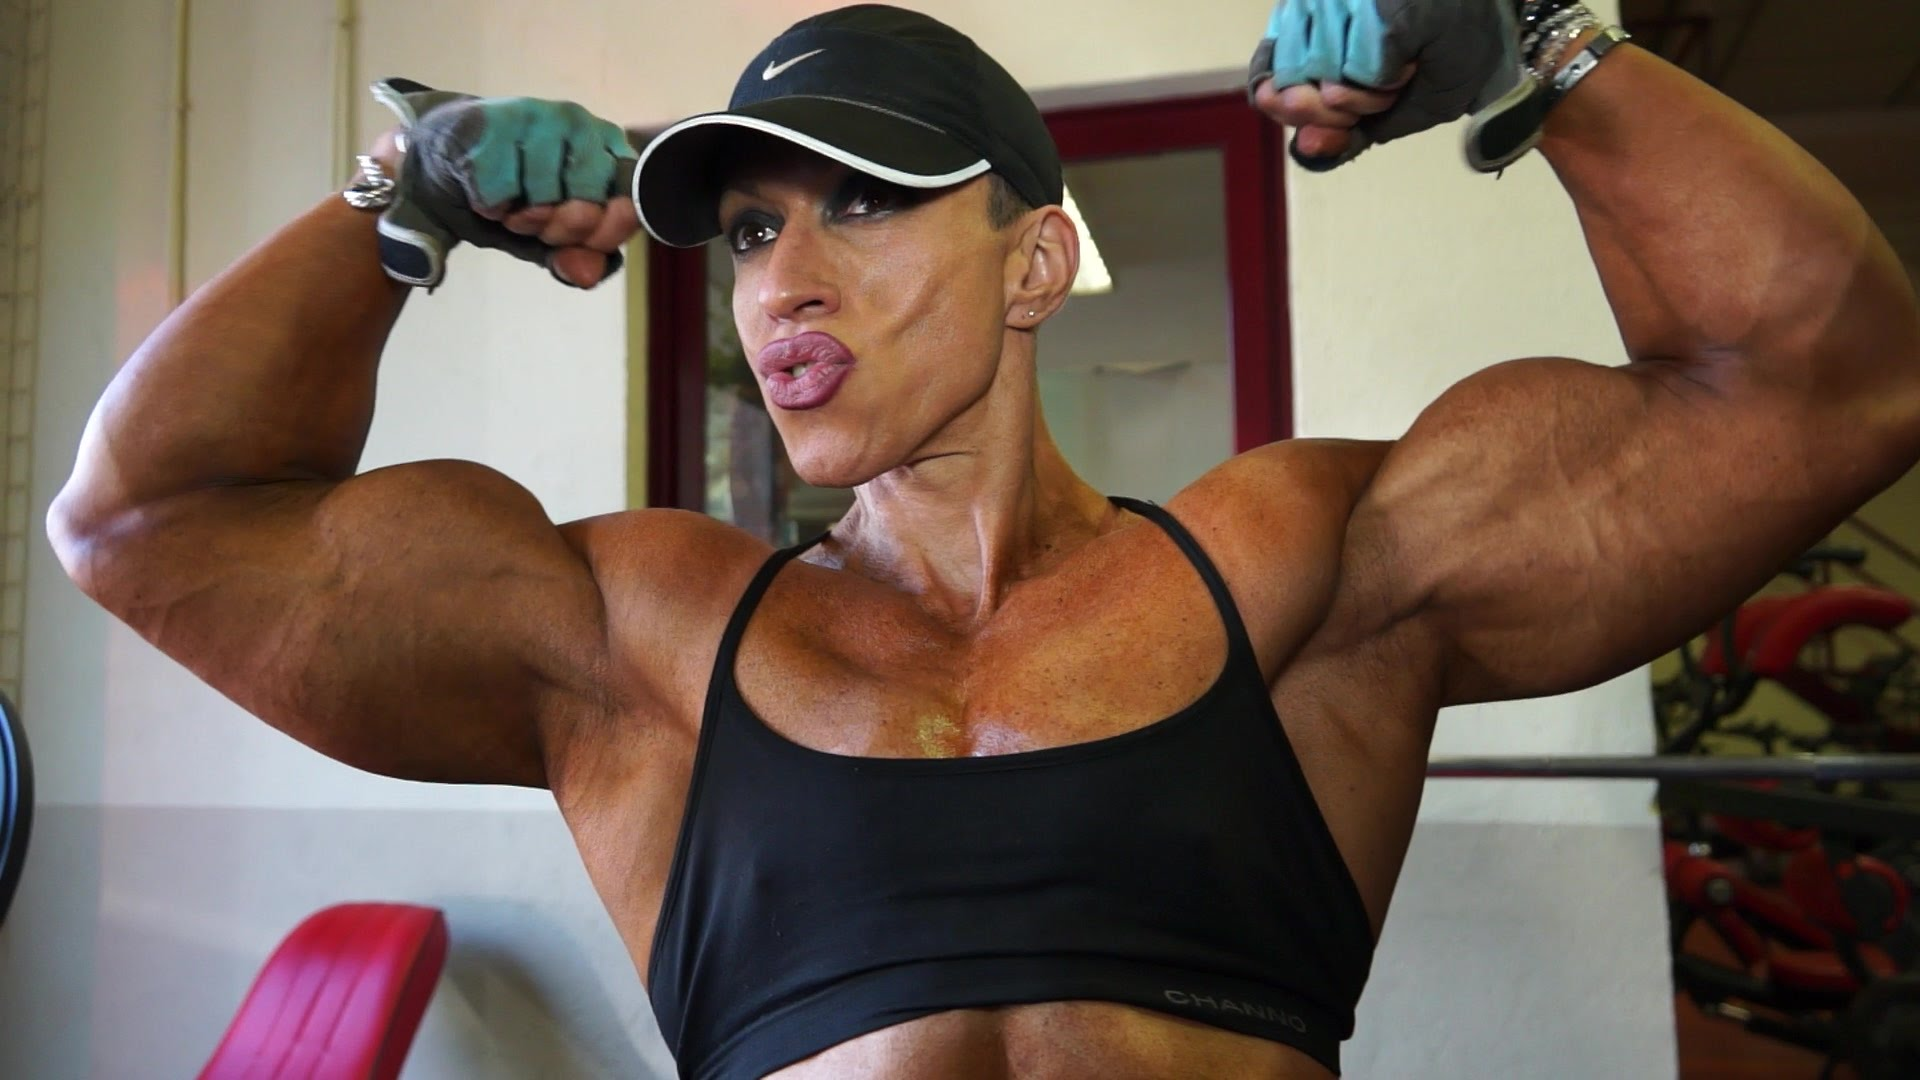 Virginia Sanchez Macias – Hard Workout